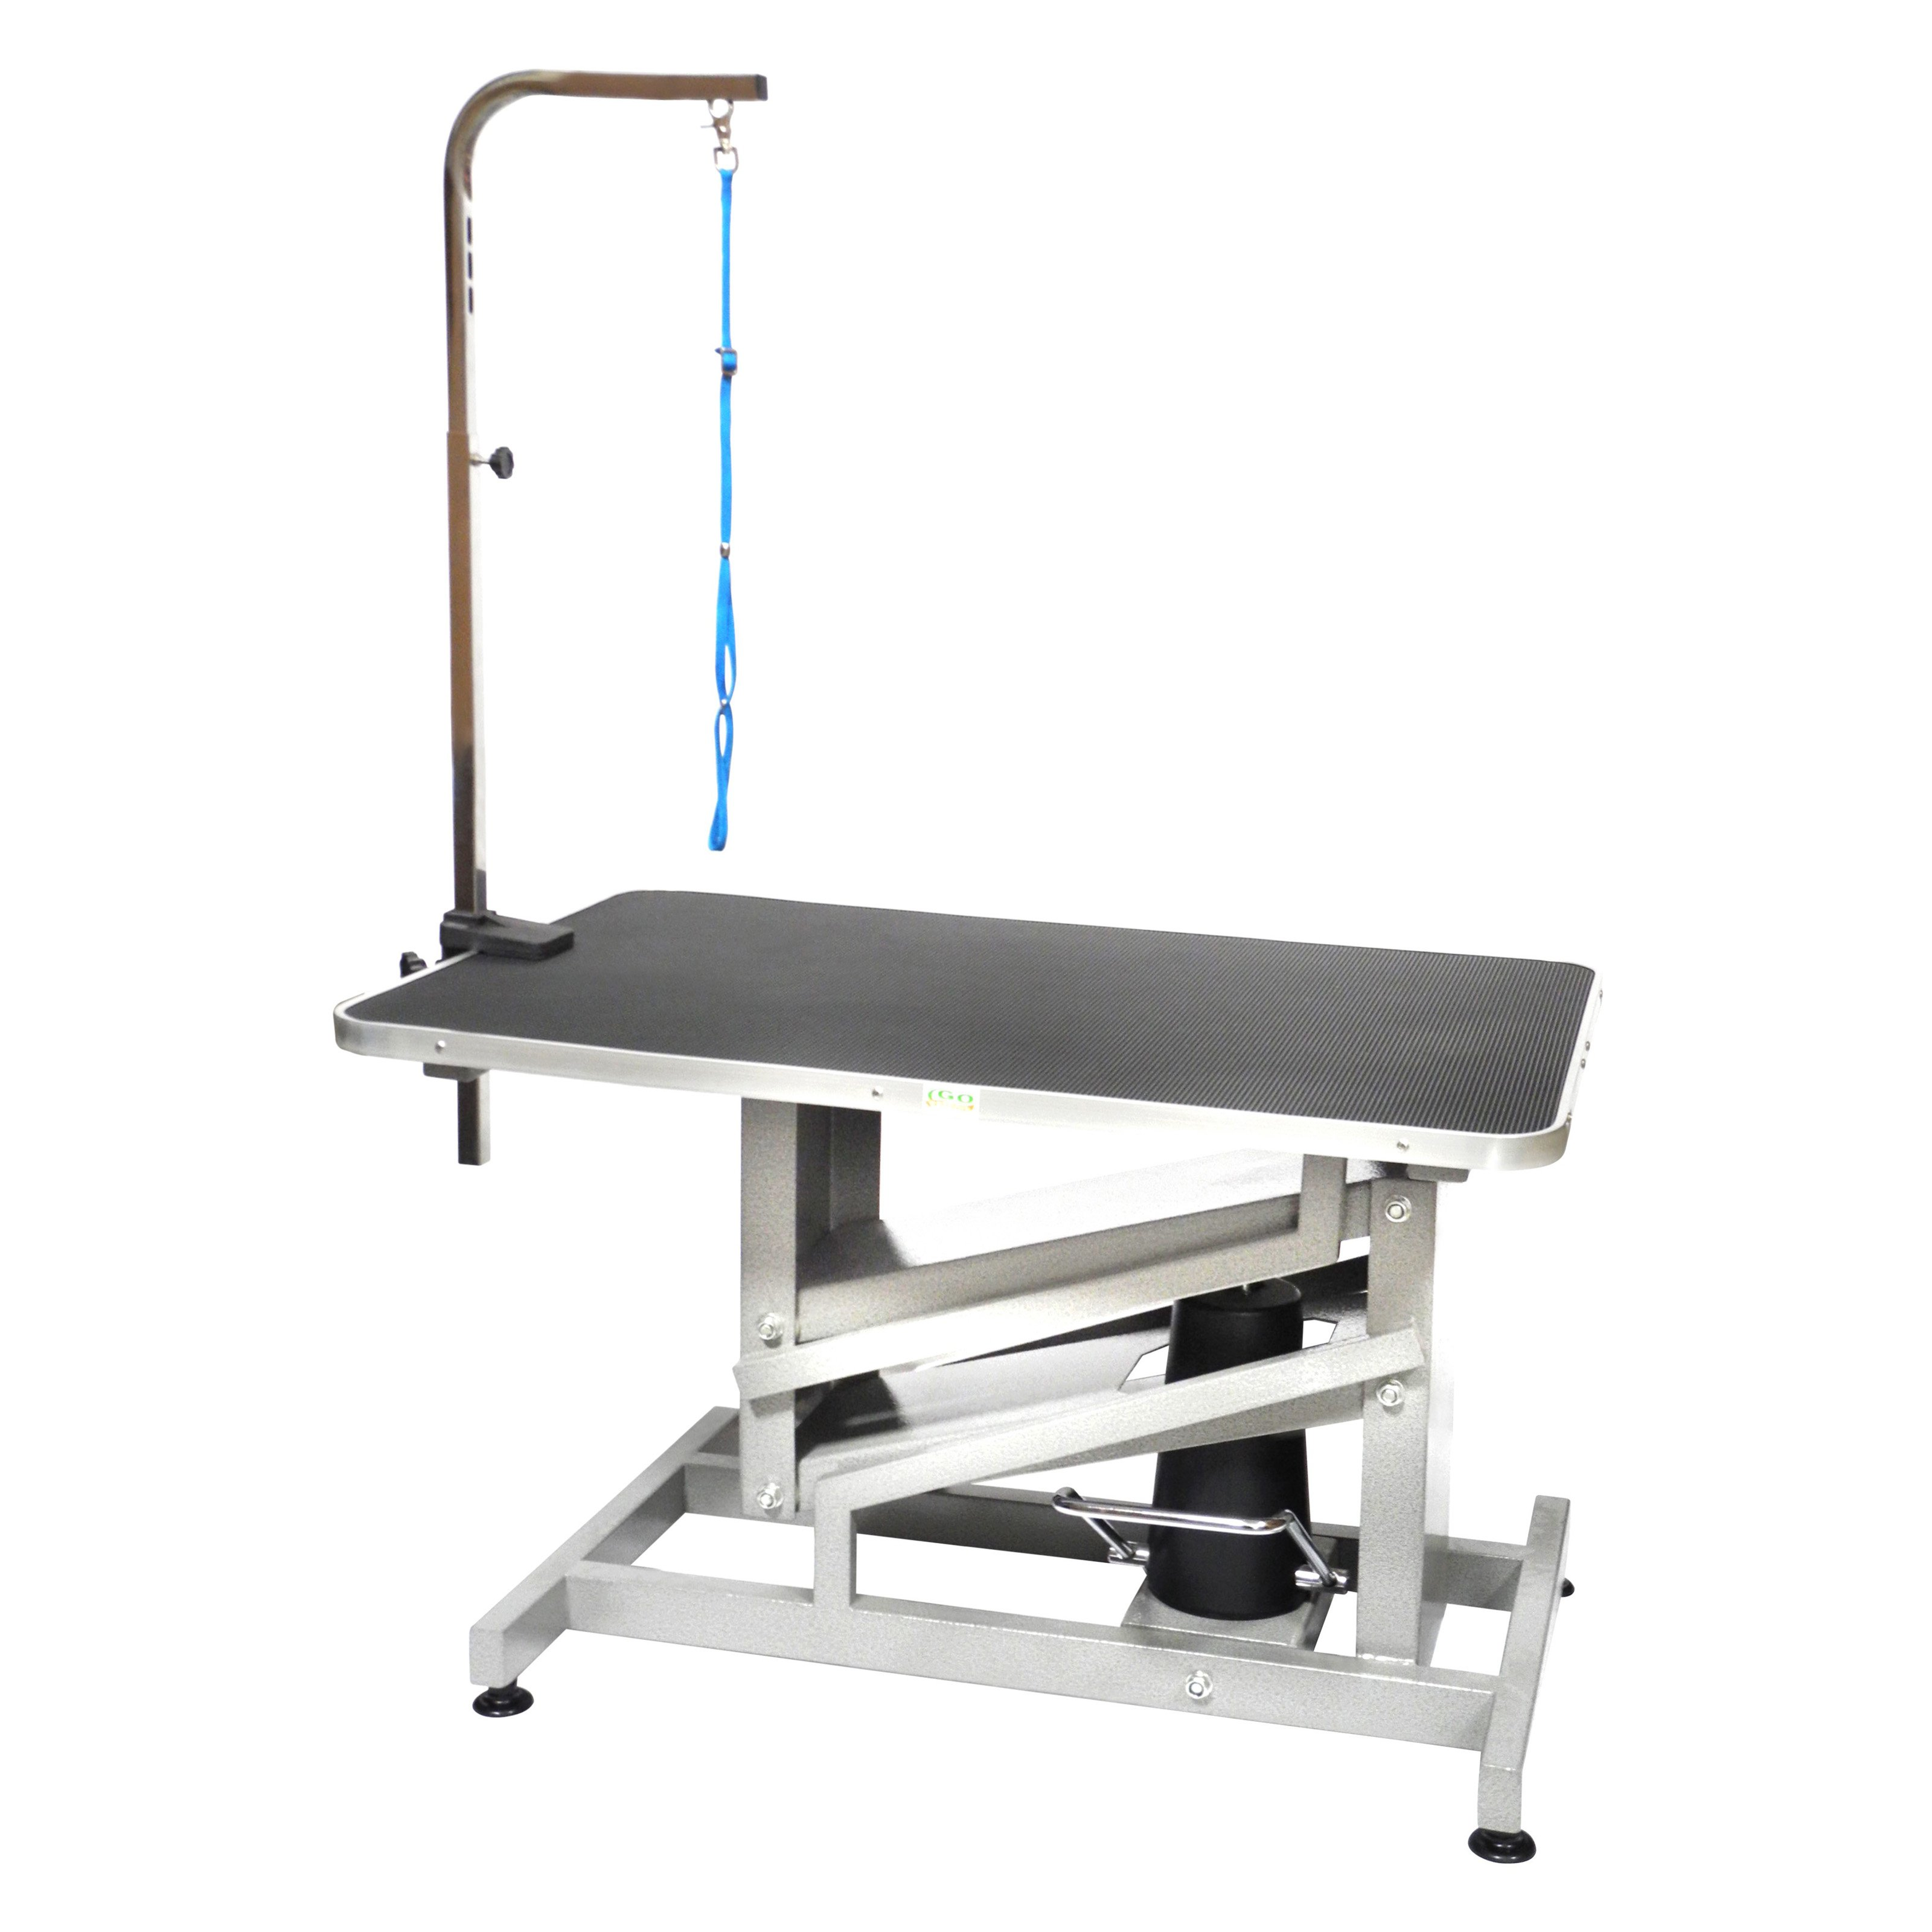 Enjoyable Details About Go Pet Club Hgt 509 36 Inch Z Lift Hydraulic Pet Dog Grooming Table With Arm Interior Design Ideas Tzicisoteloinfo